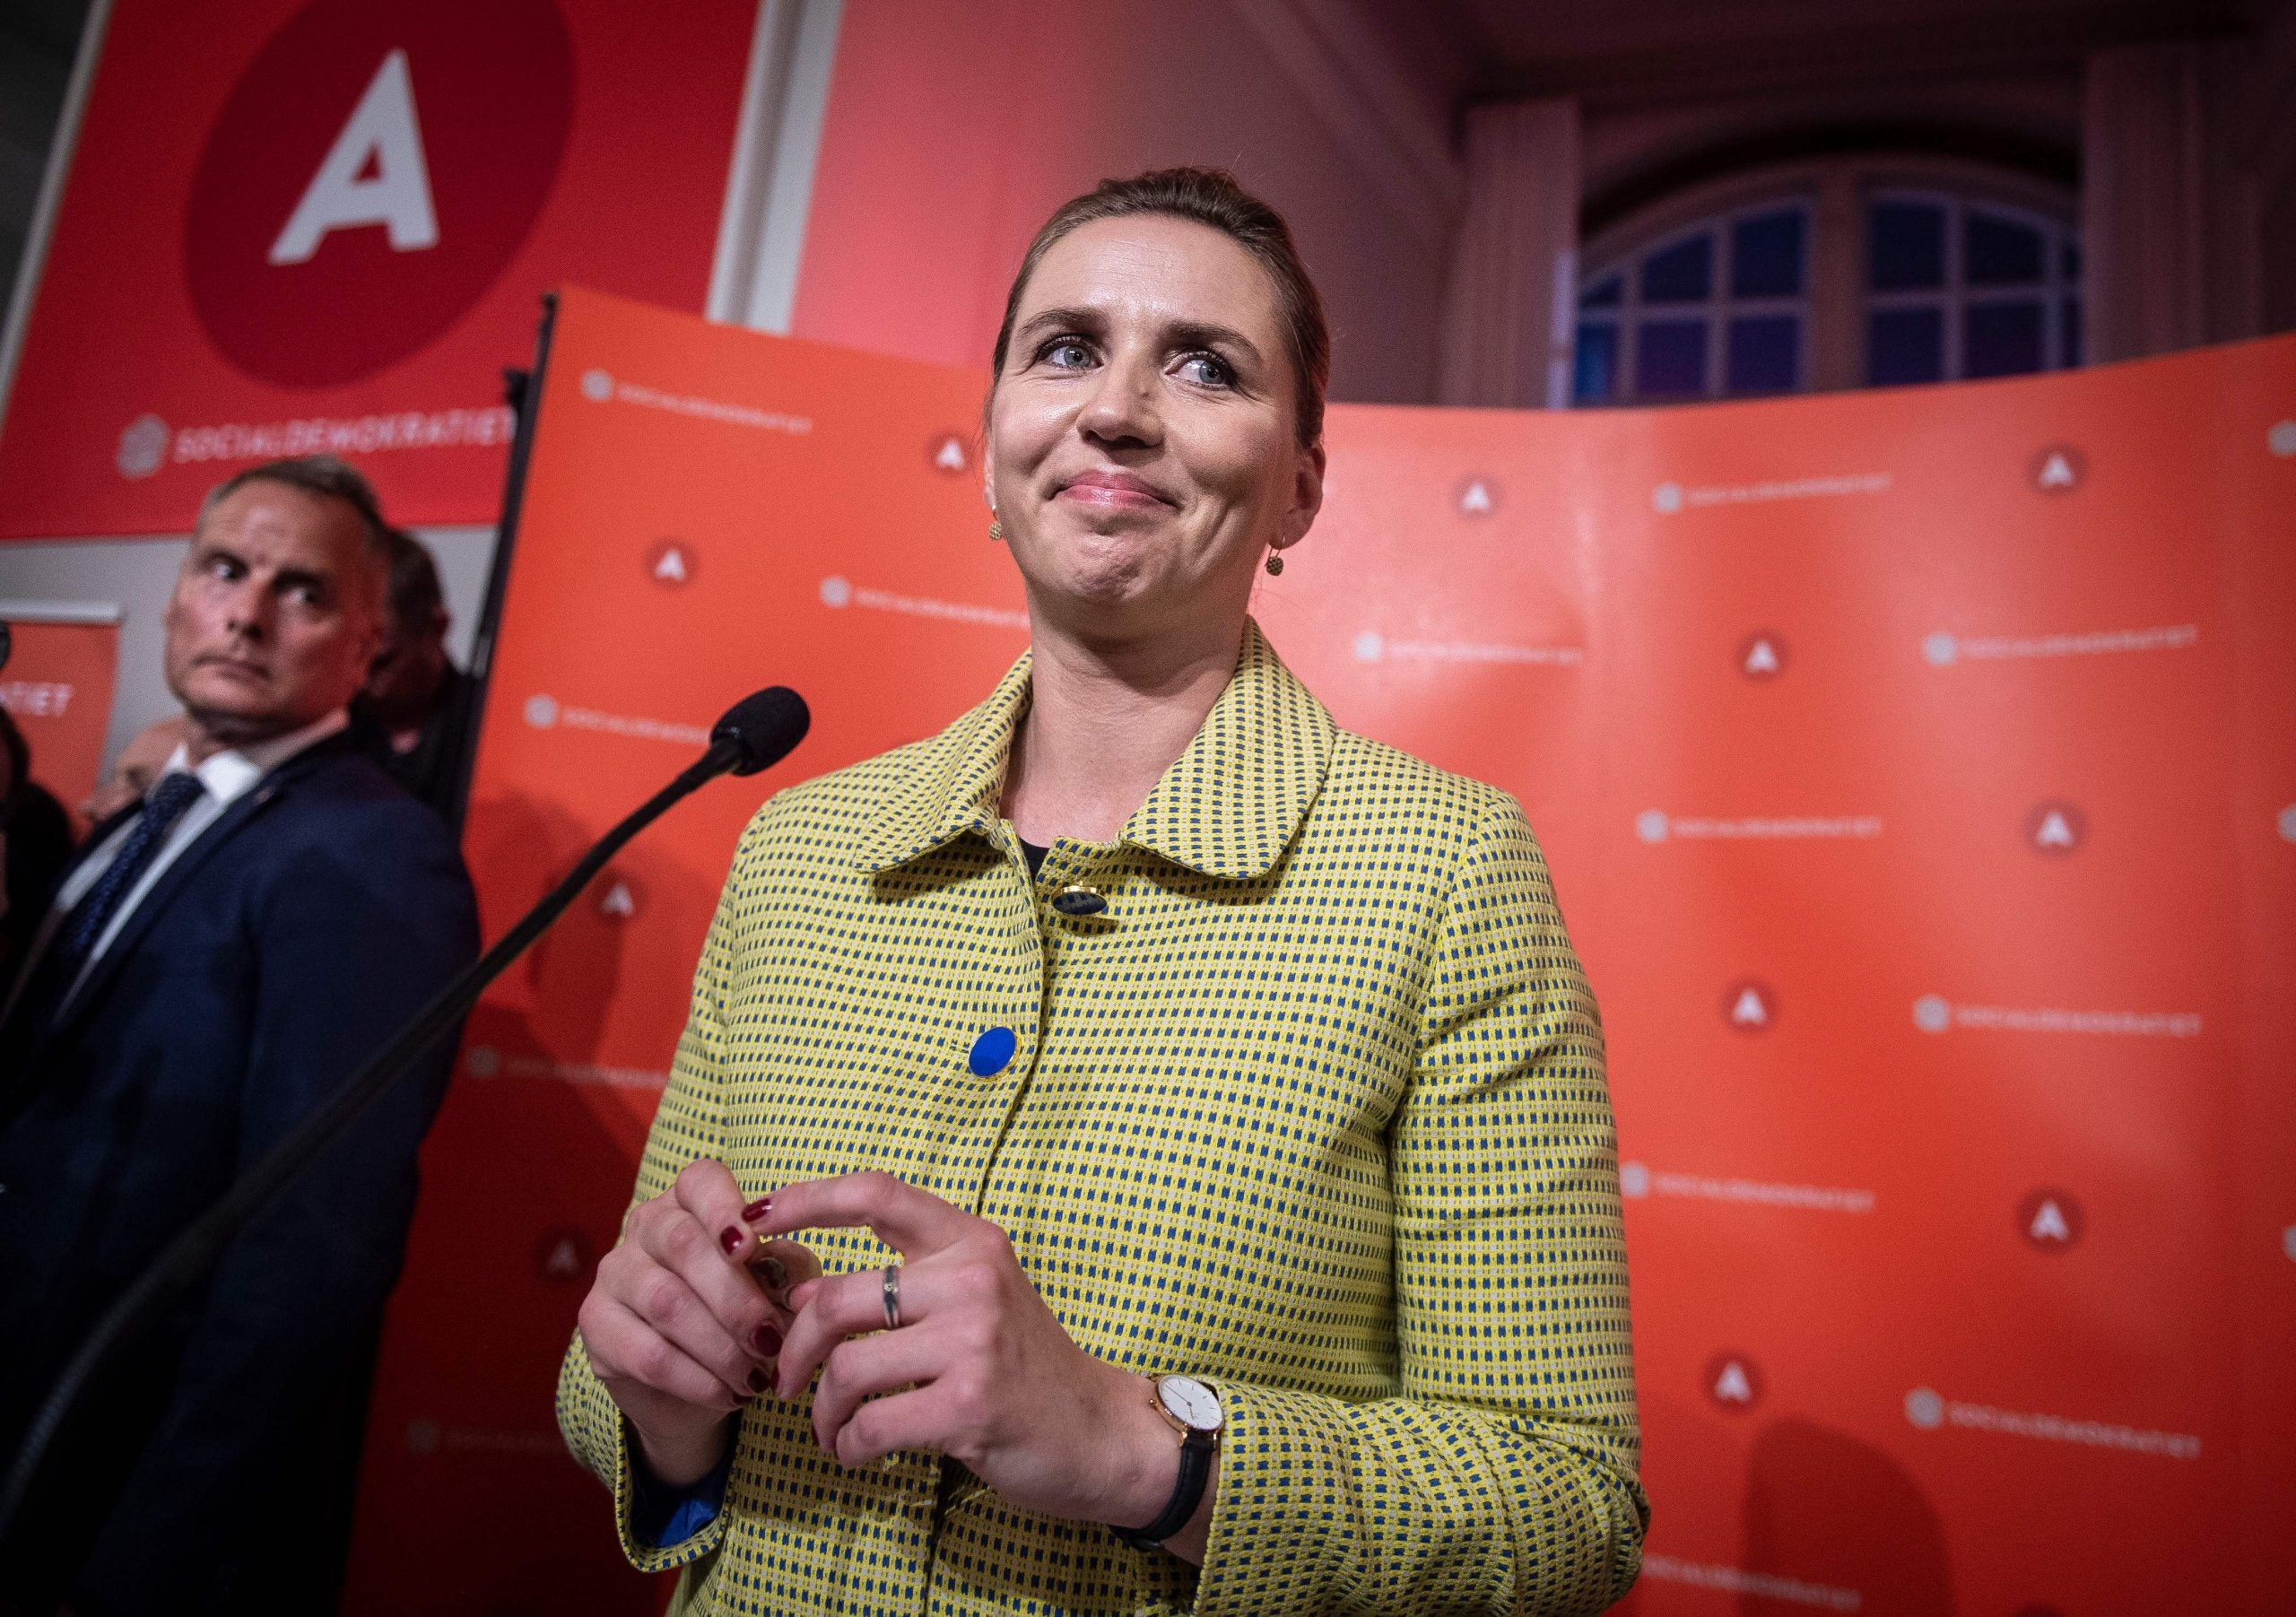 The Danish election doesn't prove that the left should embrace anti-immigration policies